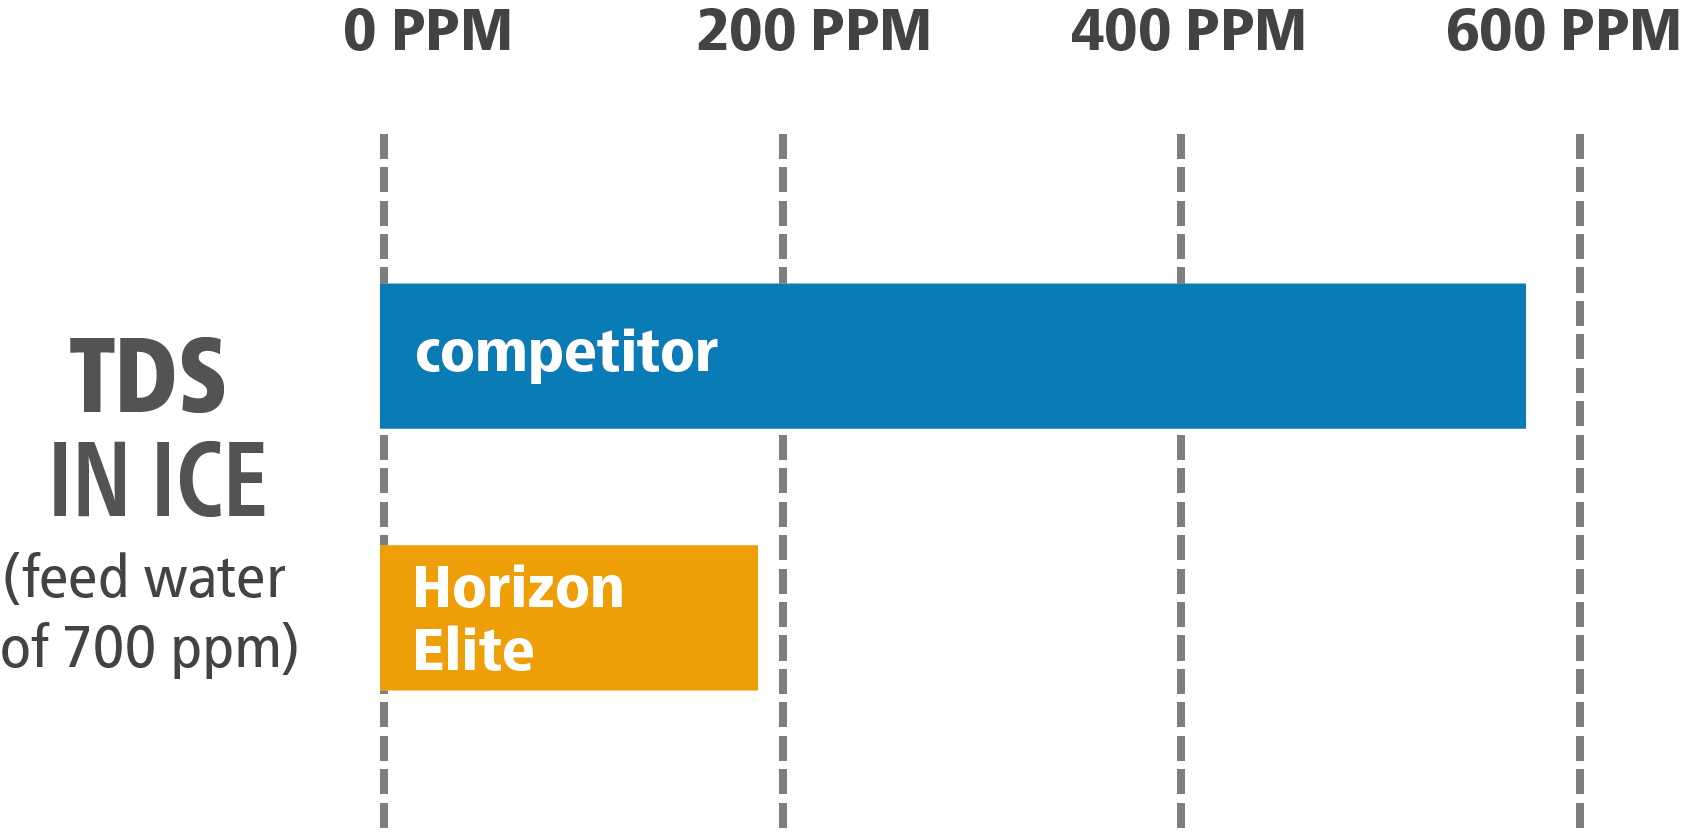 chart showing TDS in ice - competitor versus Horizon Elite